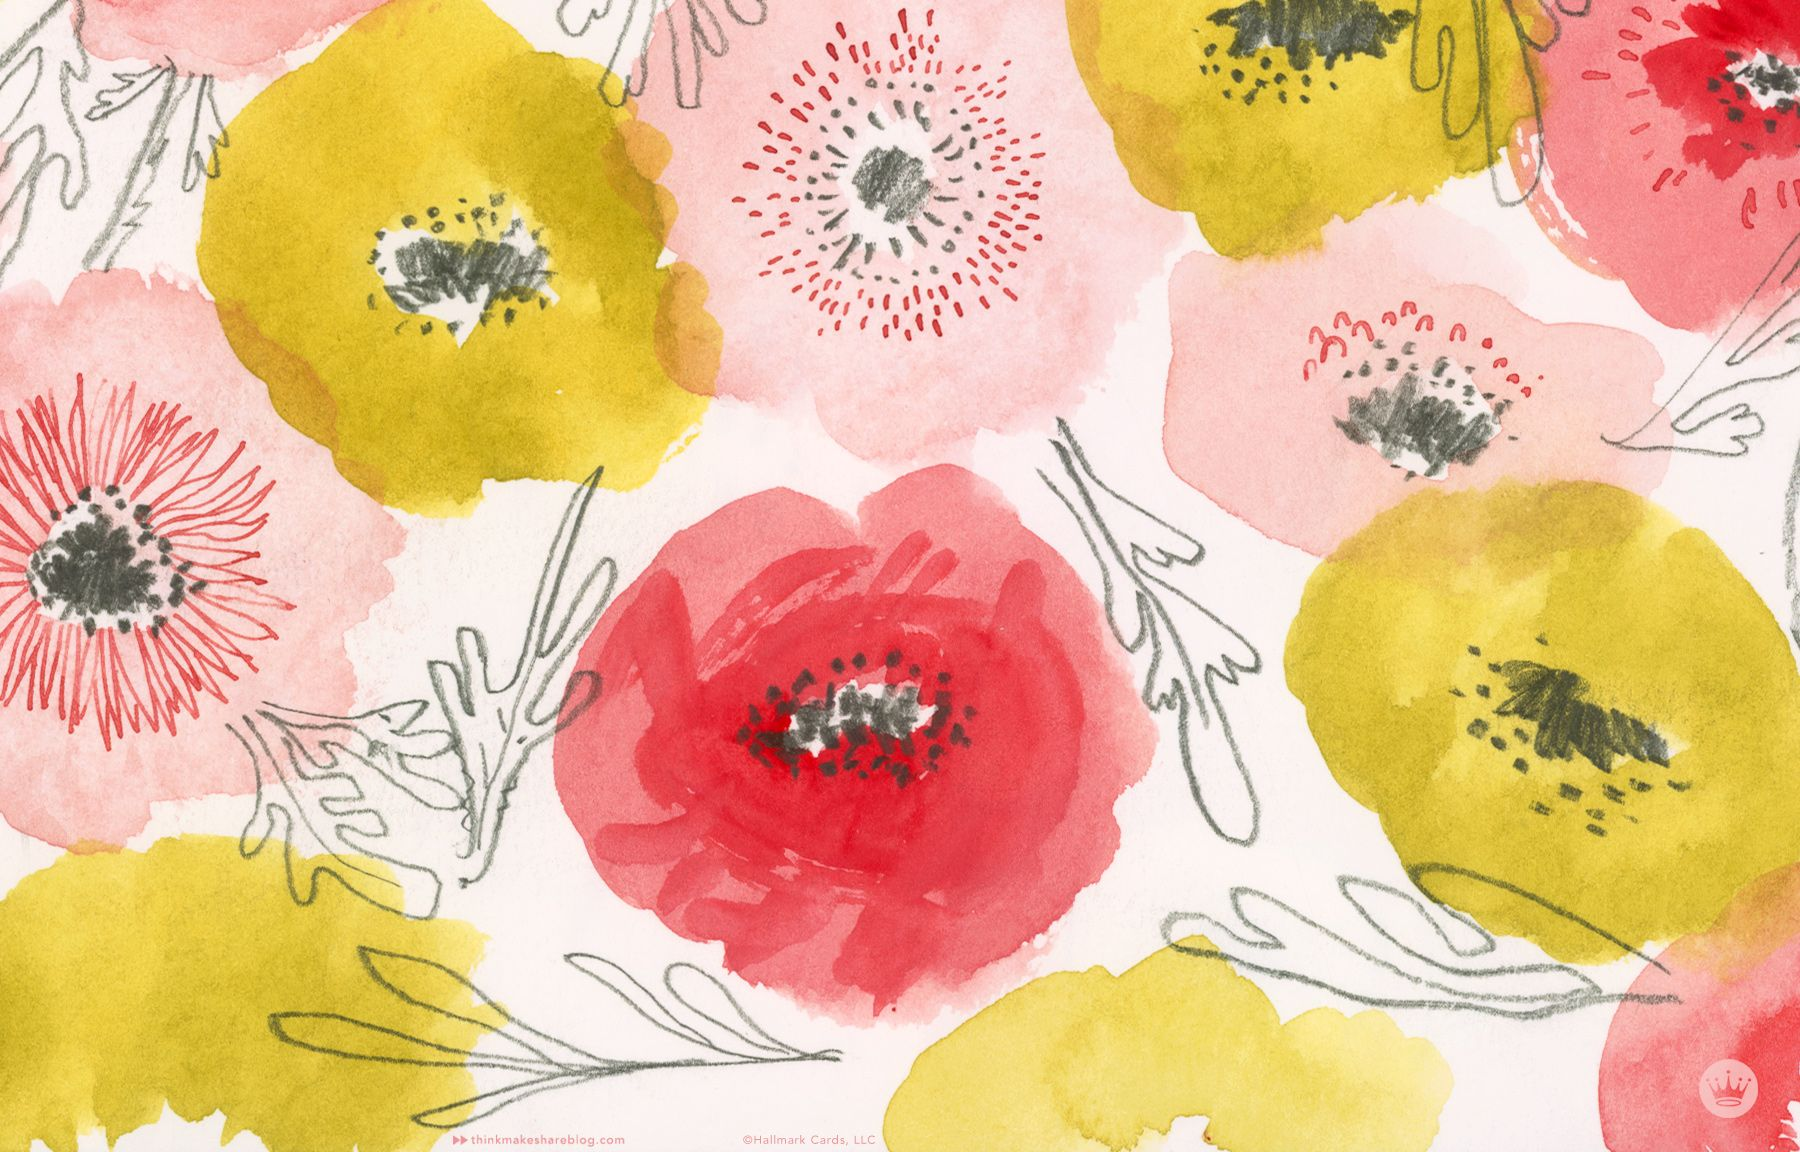 Think Make Share Goes Spring Crazy With Three Digital Wallpapers And A Playlist Floral Wallpaper Desktop Watercolor Desktop Wallpaper Spring Desktop Wallpaper